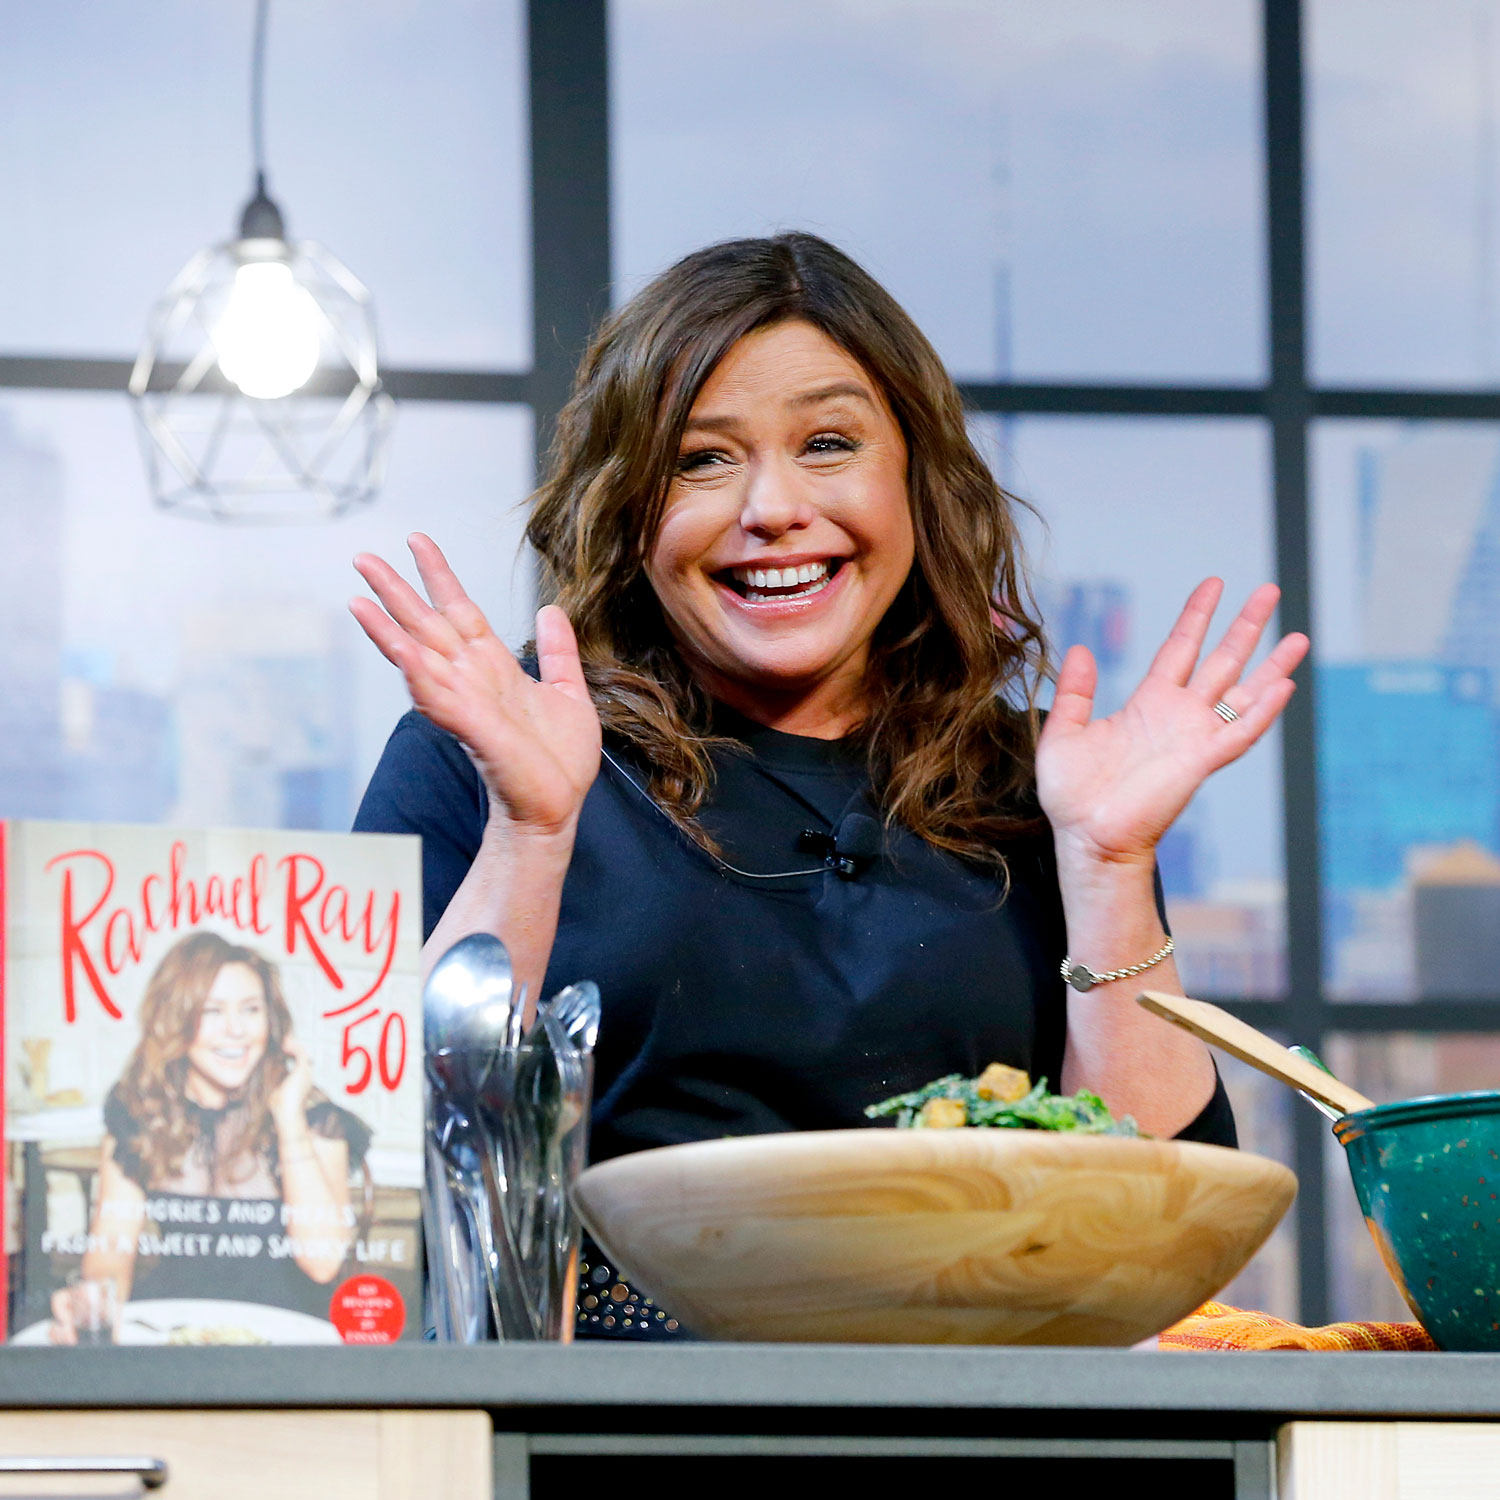 Why Rachael Ray, the Queen of Quick Meals, Doesn't Ever Eat PB&J Sandwiches